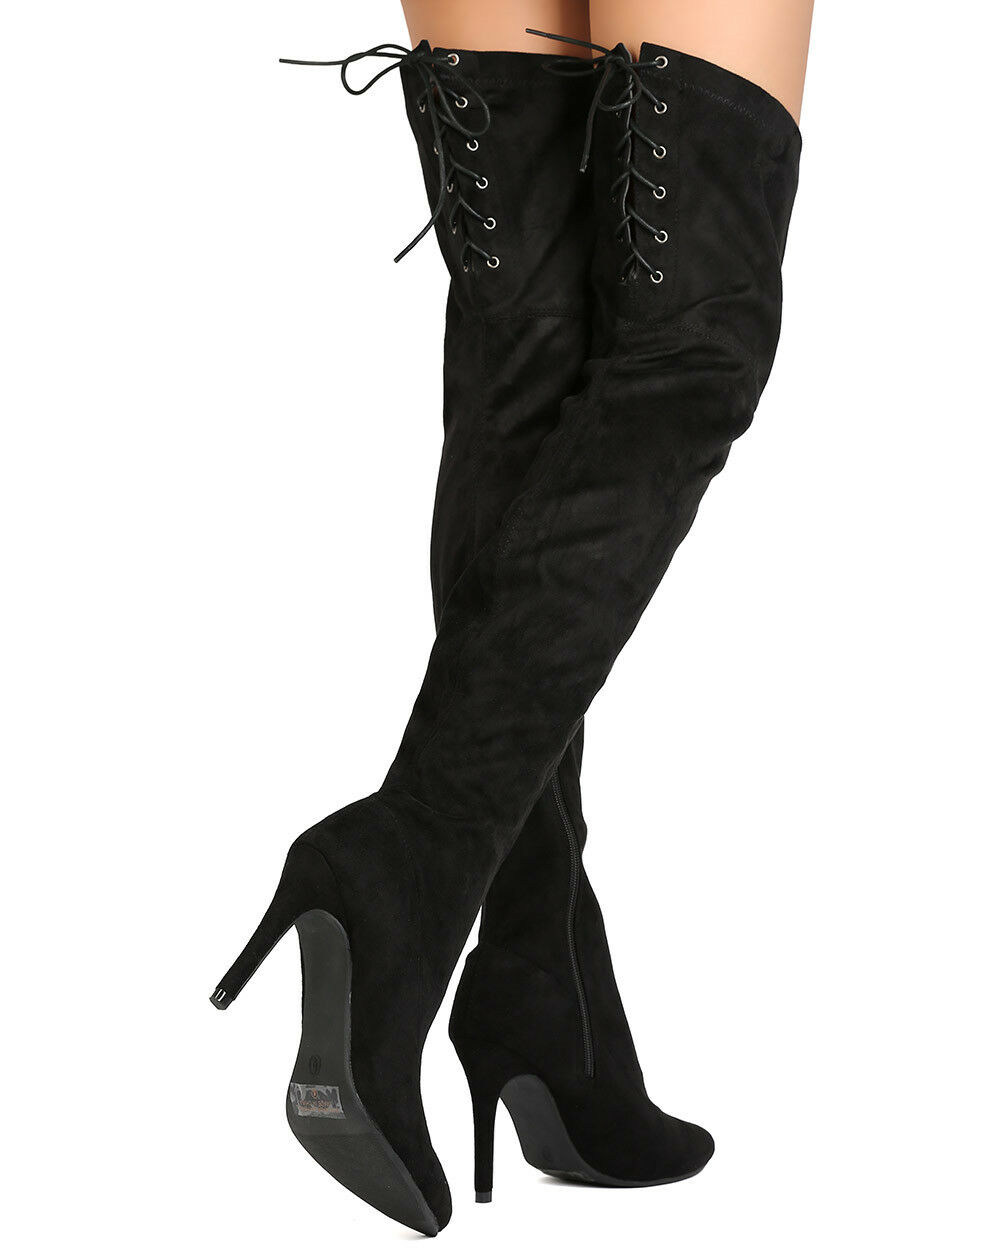 New Women Indulge Gloria-01 Faux Suede Thigh High Lace Up Stiletto Boot